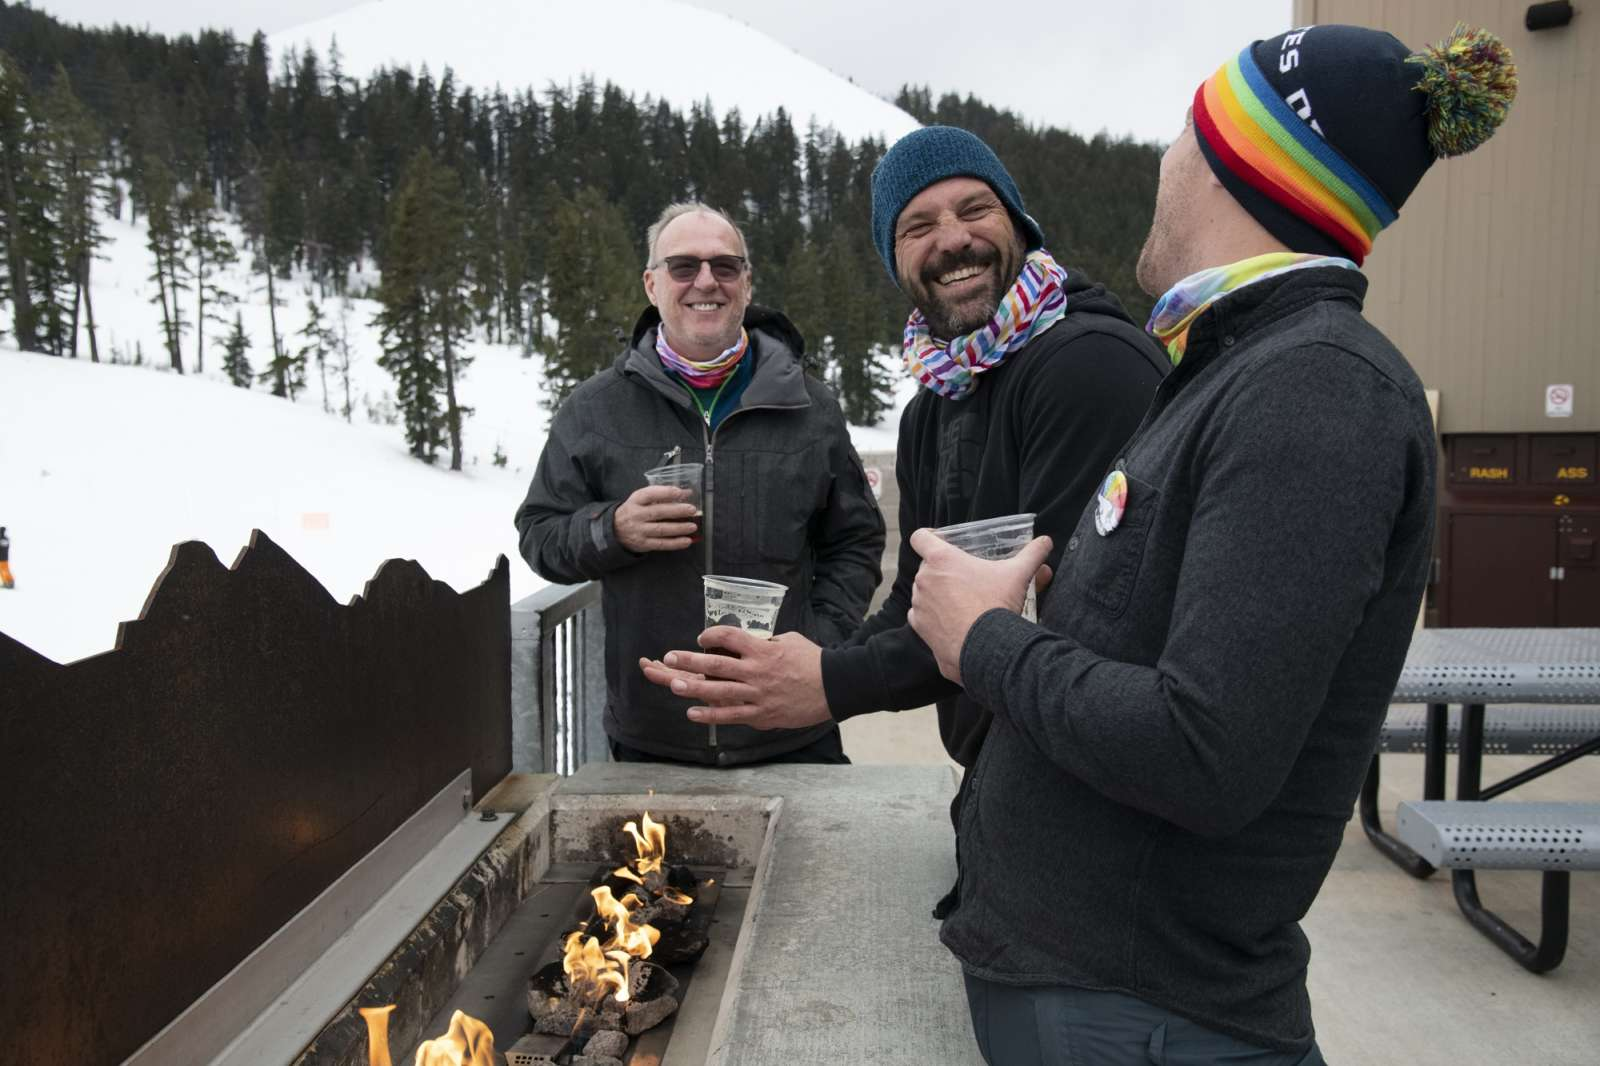 Mt. Bachelor skiers with rainbow pride gear for PrideFest